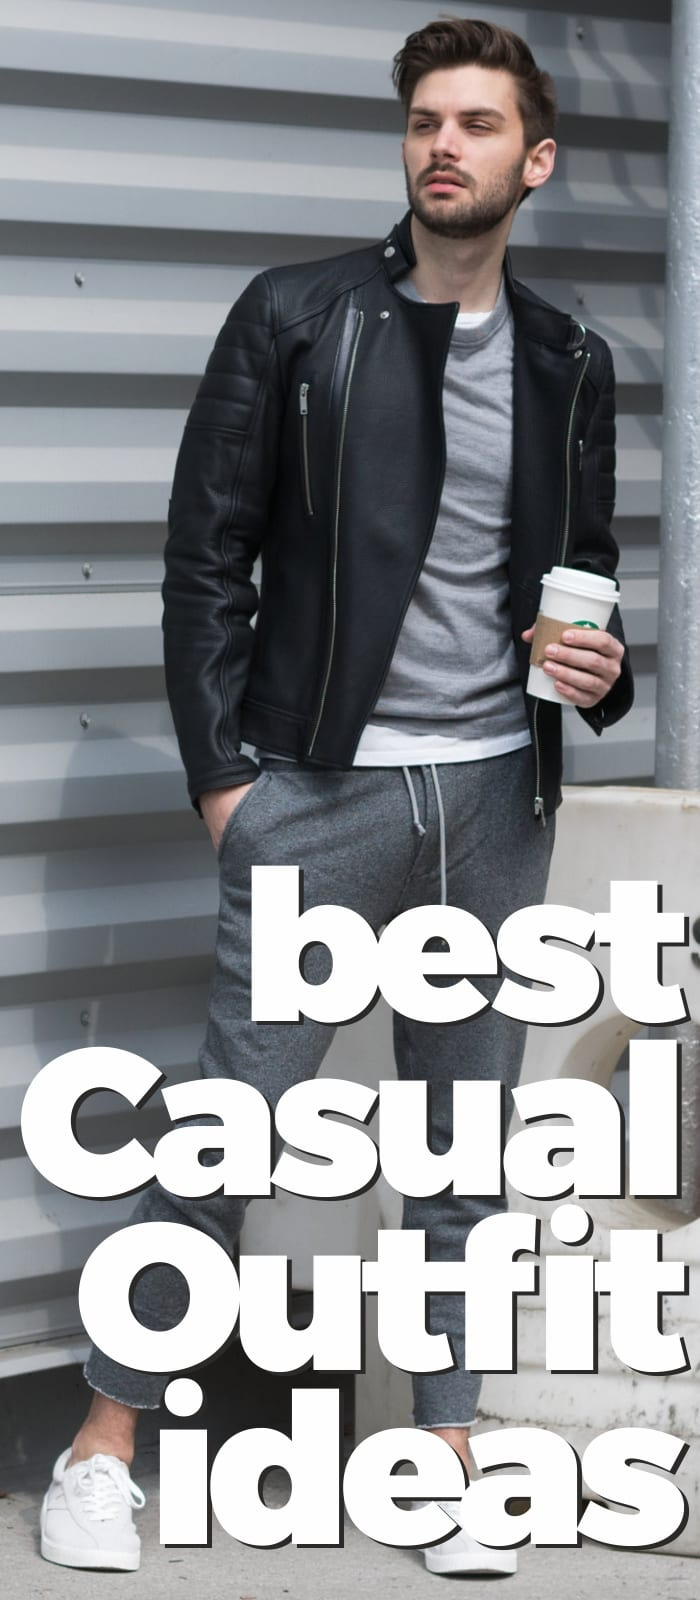 10 Stylish American Casual Outfit Ideas Men Need To Steal